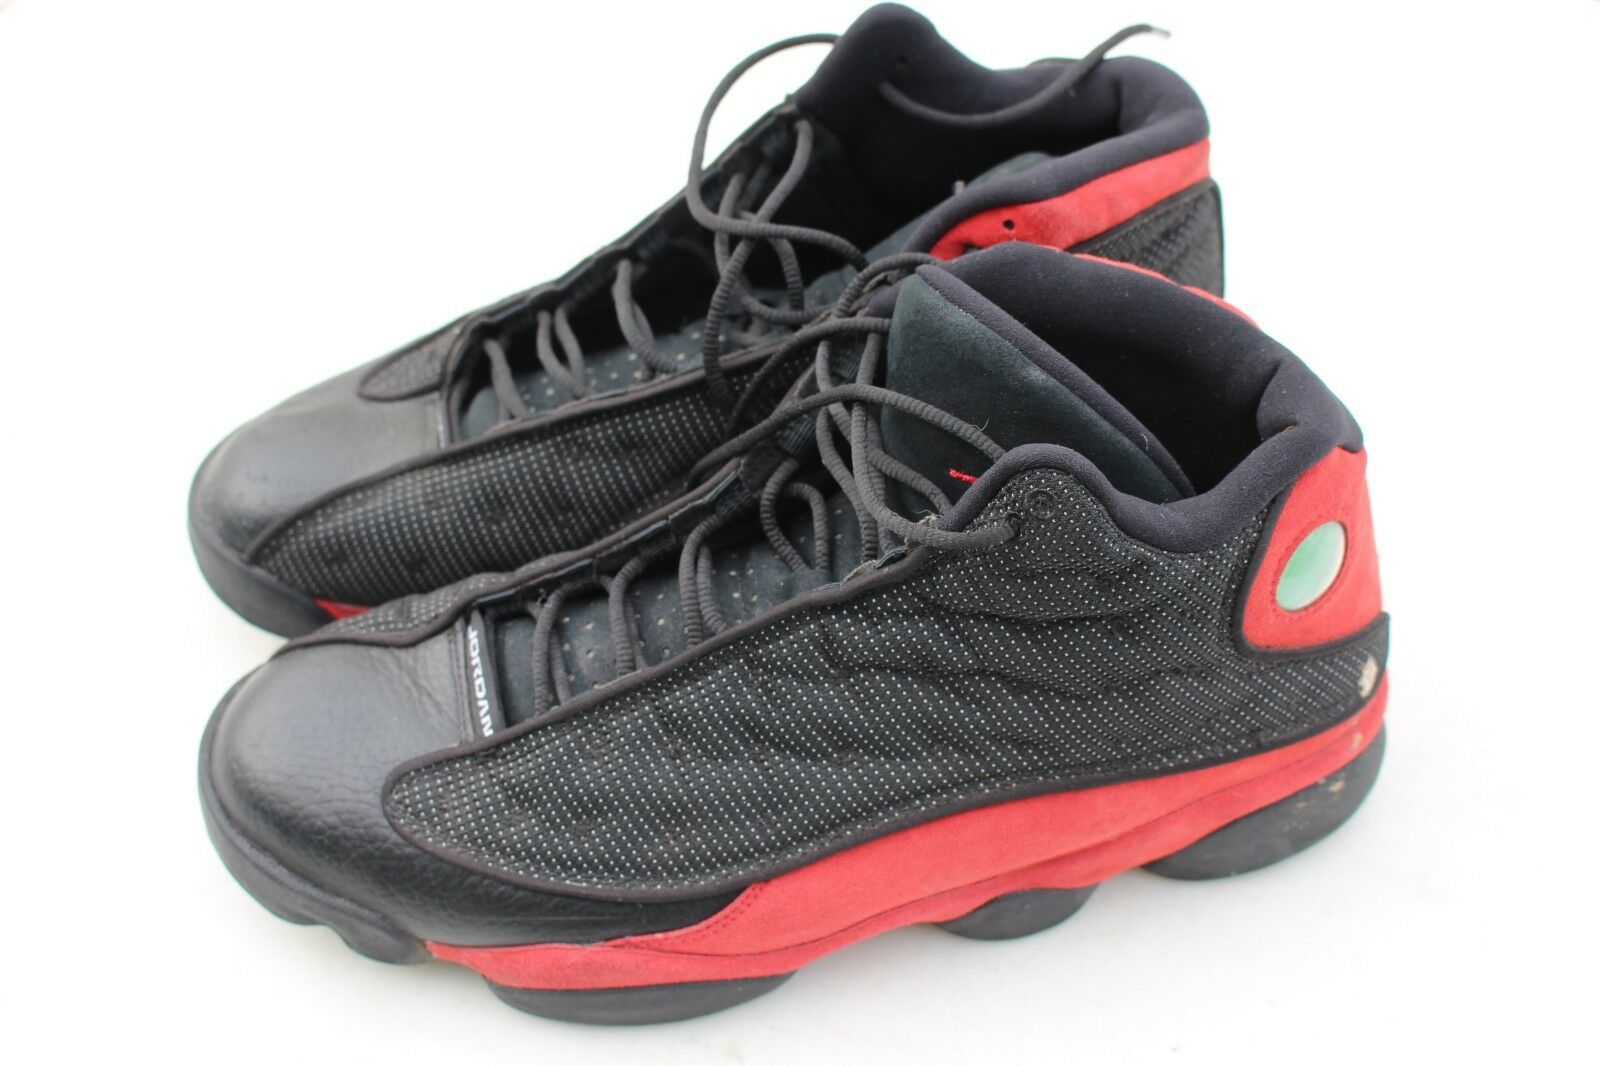 aa884e2be54 NIKE AIR JORDAN XIII 13 RETRO BRED PLAYOFF TRUE RED-WHITE 12 BLACK  414571-004 niuudd6057-Athletic Shoes